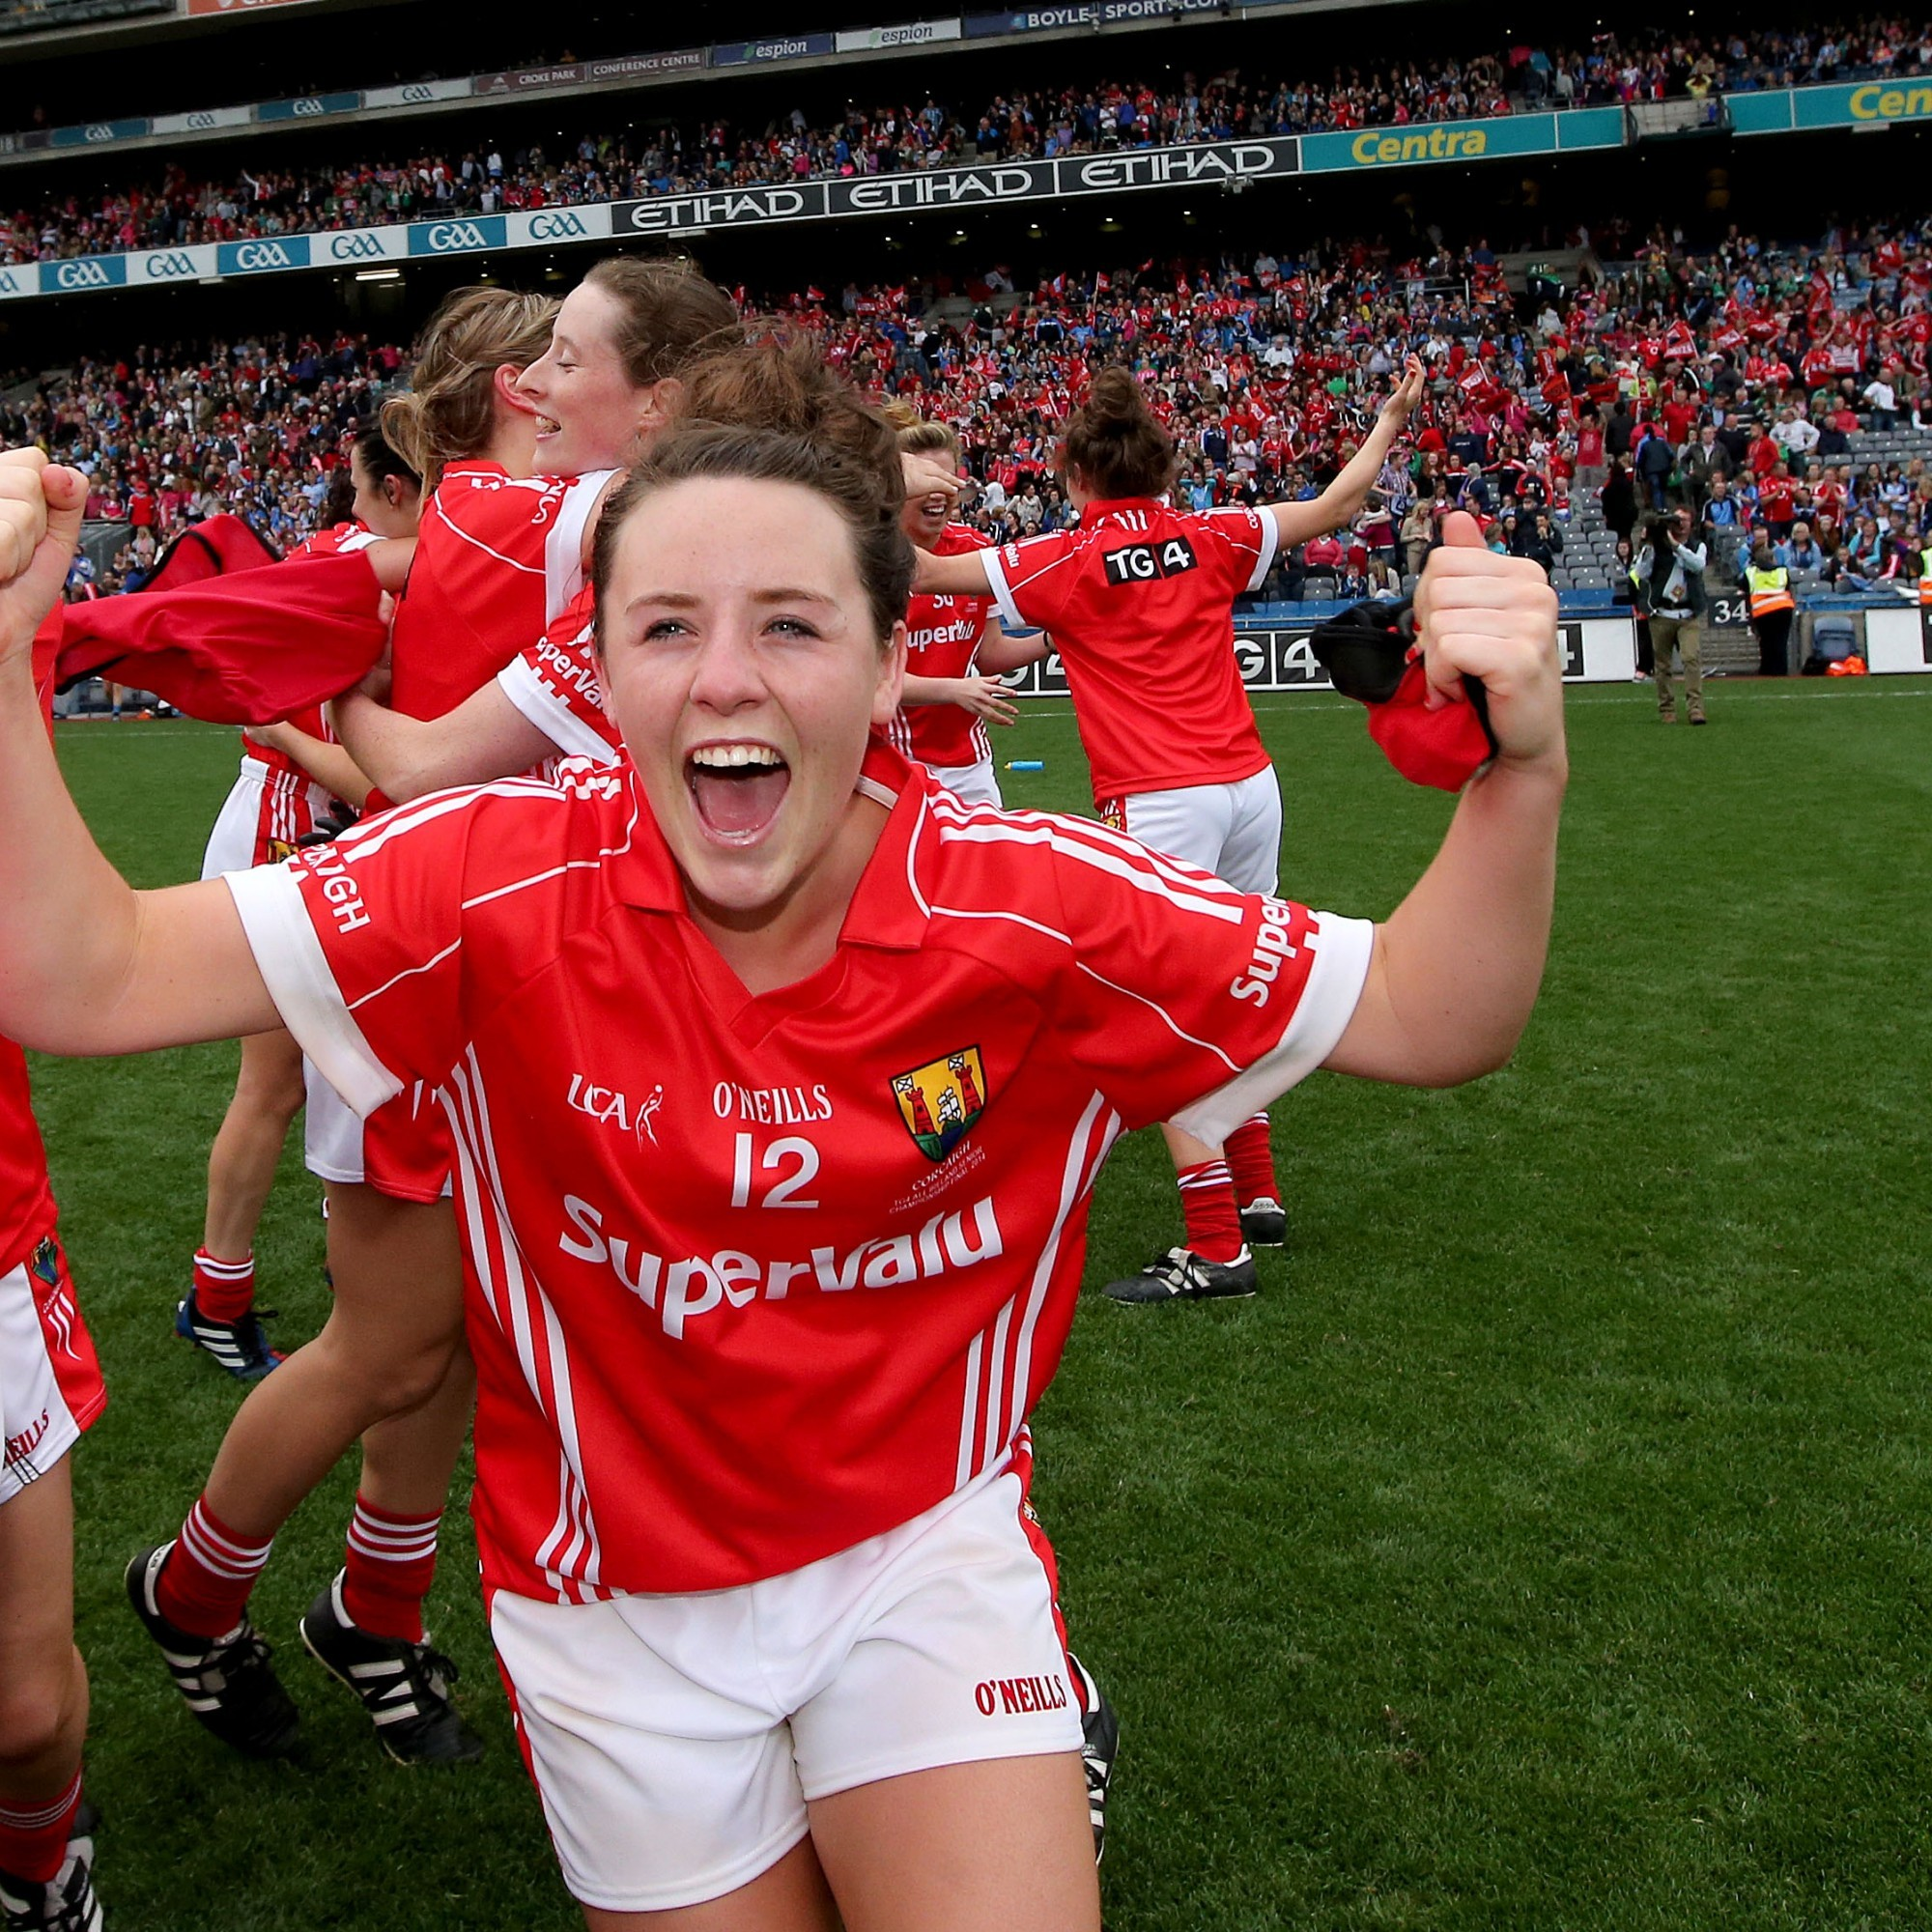 5-time All-Ireland winner turned down athletics scholarship in Kentucky to play for Cork